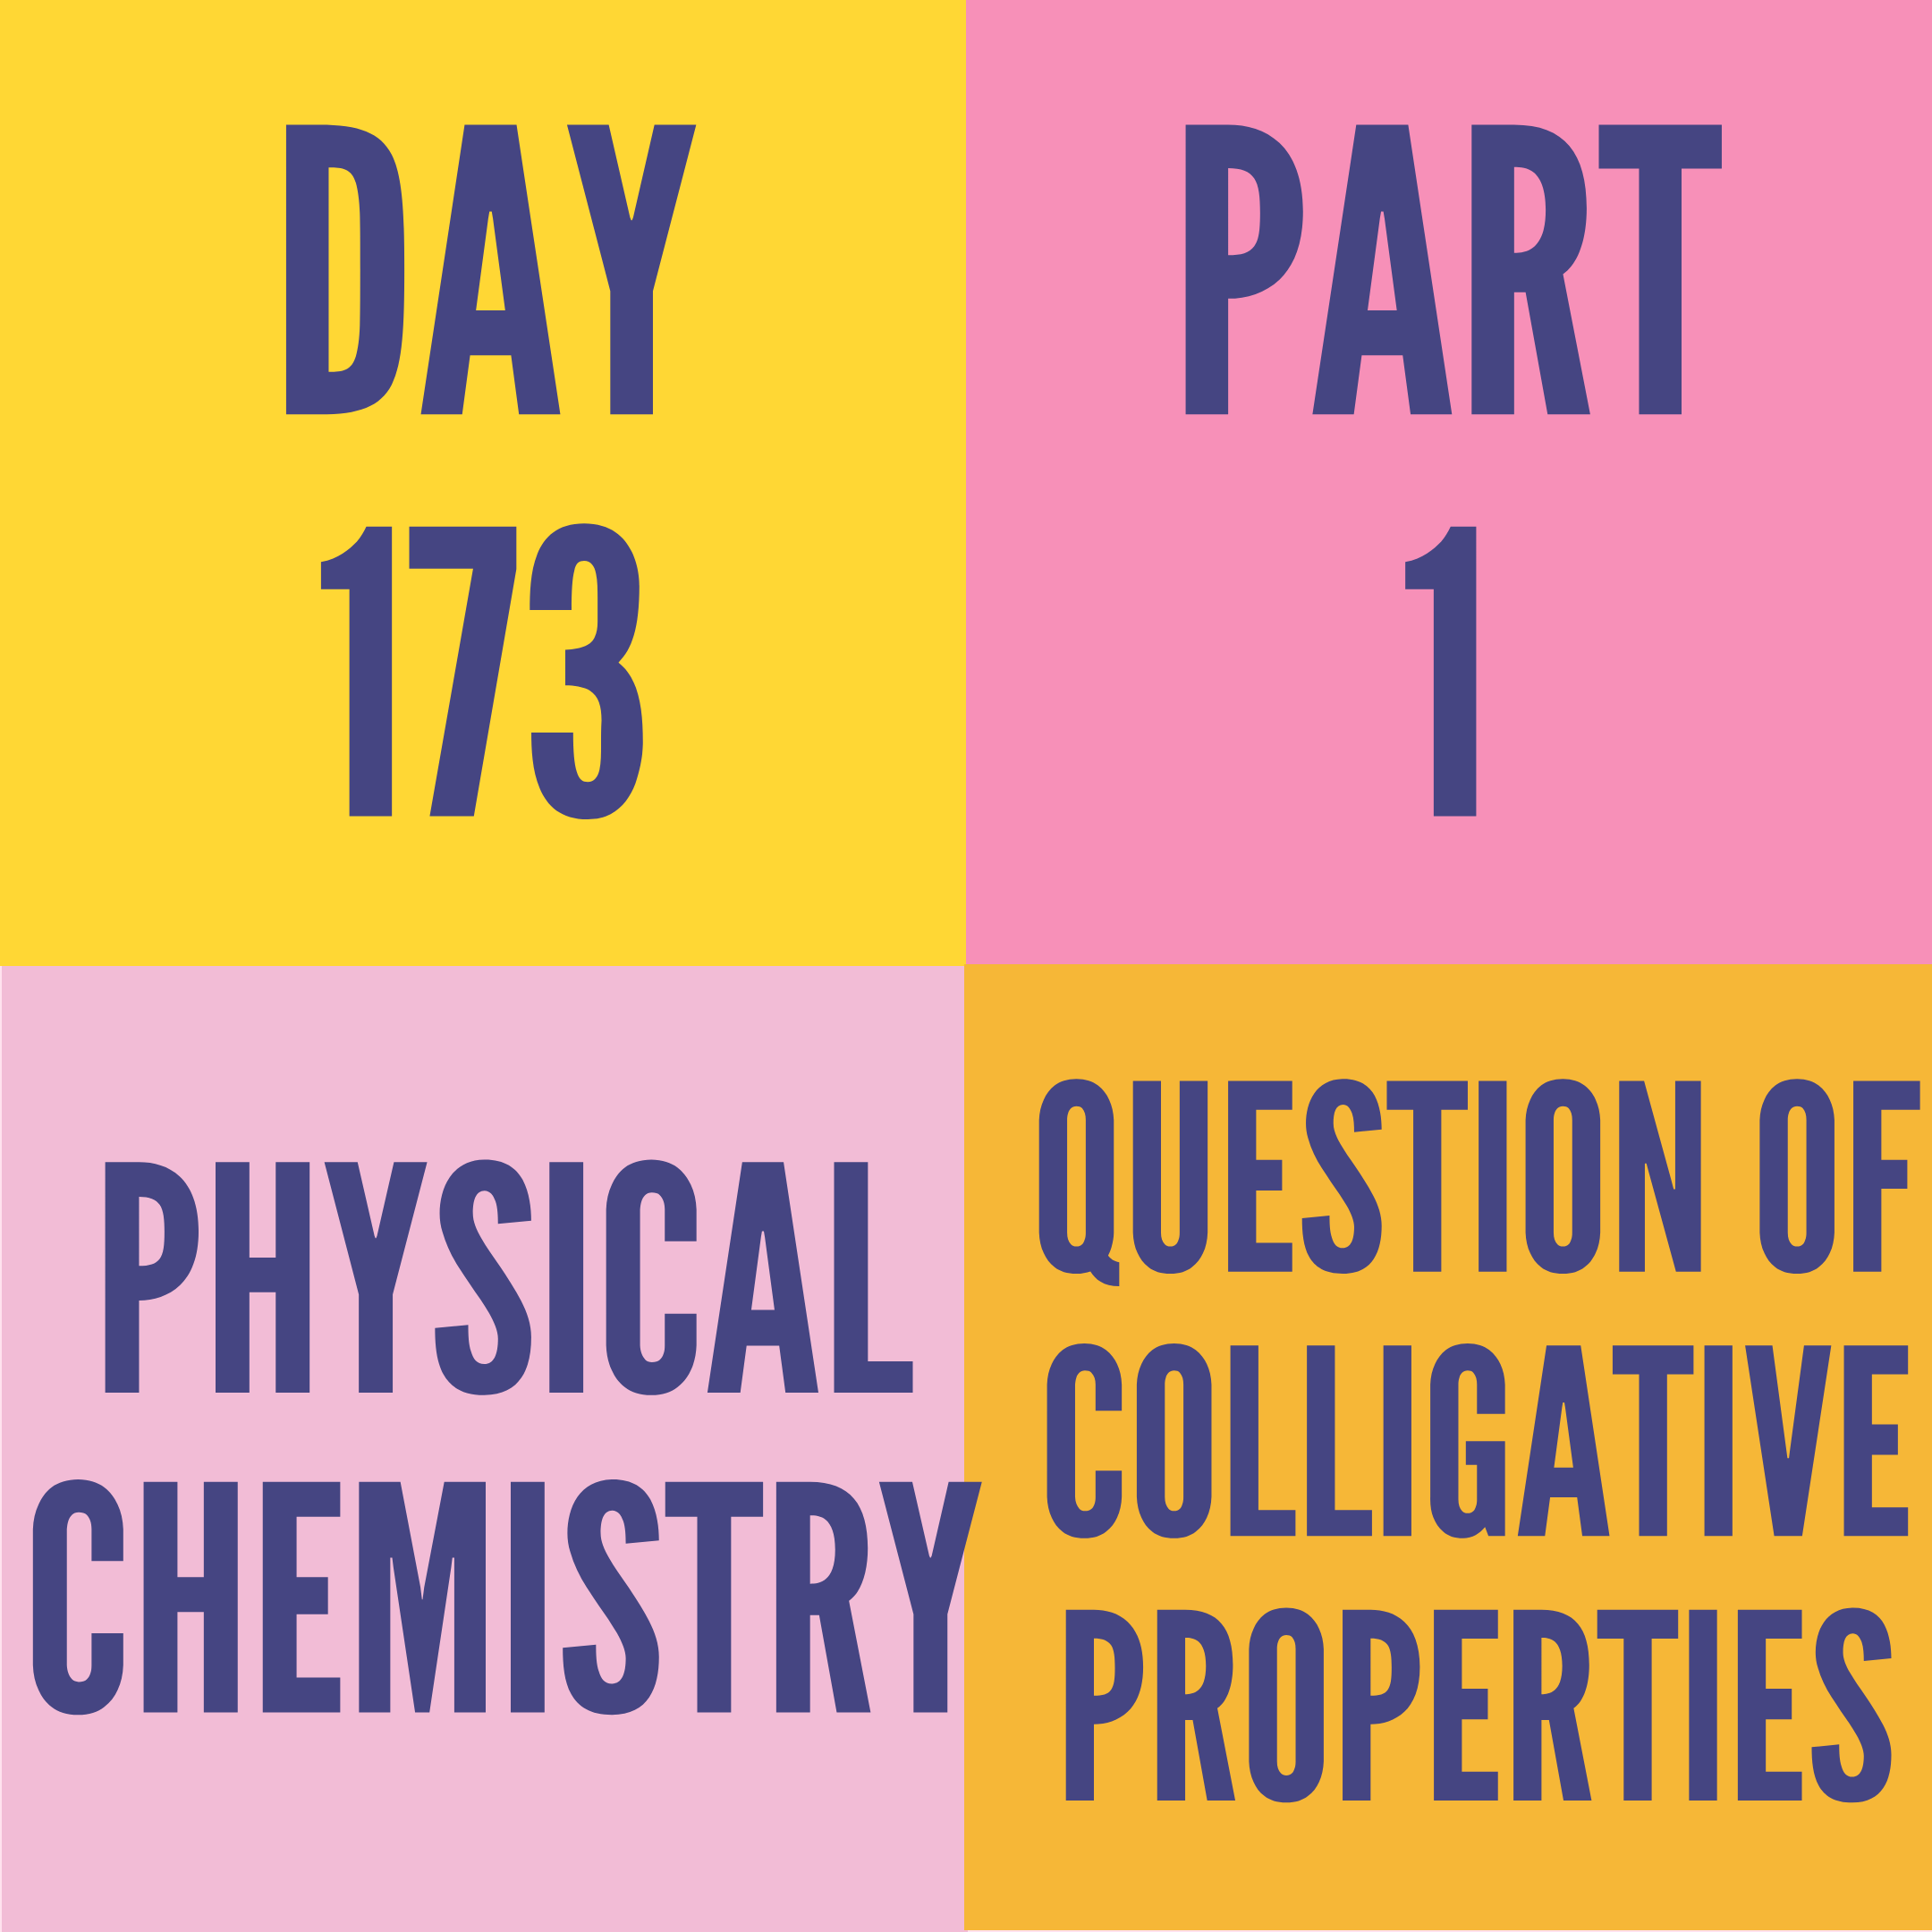 DAY-173 PART-1 QUESTION OF COLLIGATIVE PROPERTIES